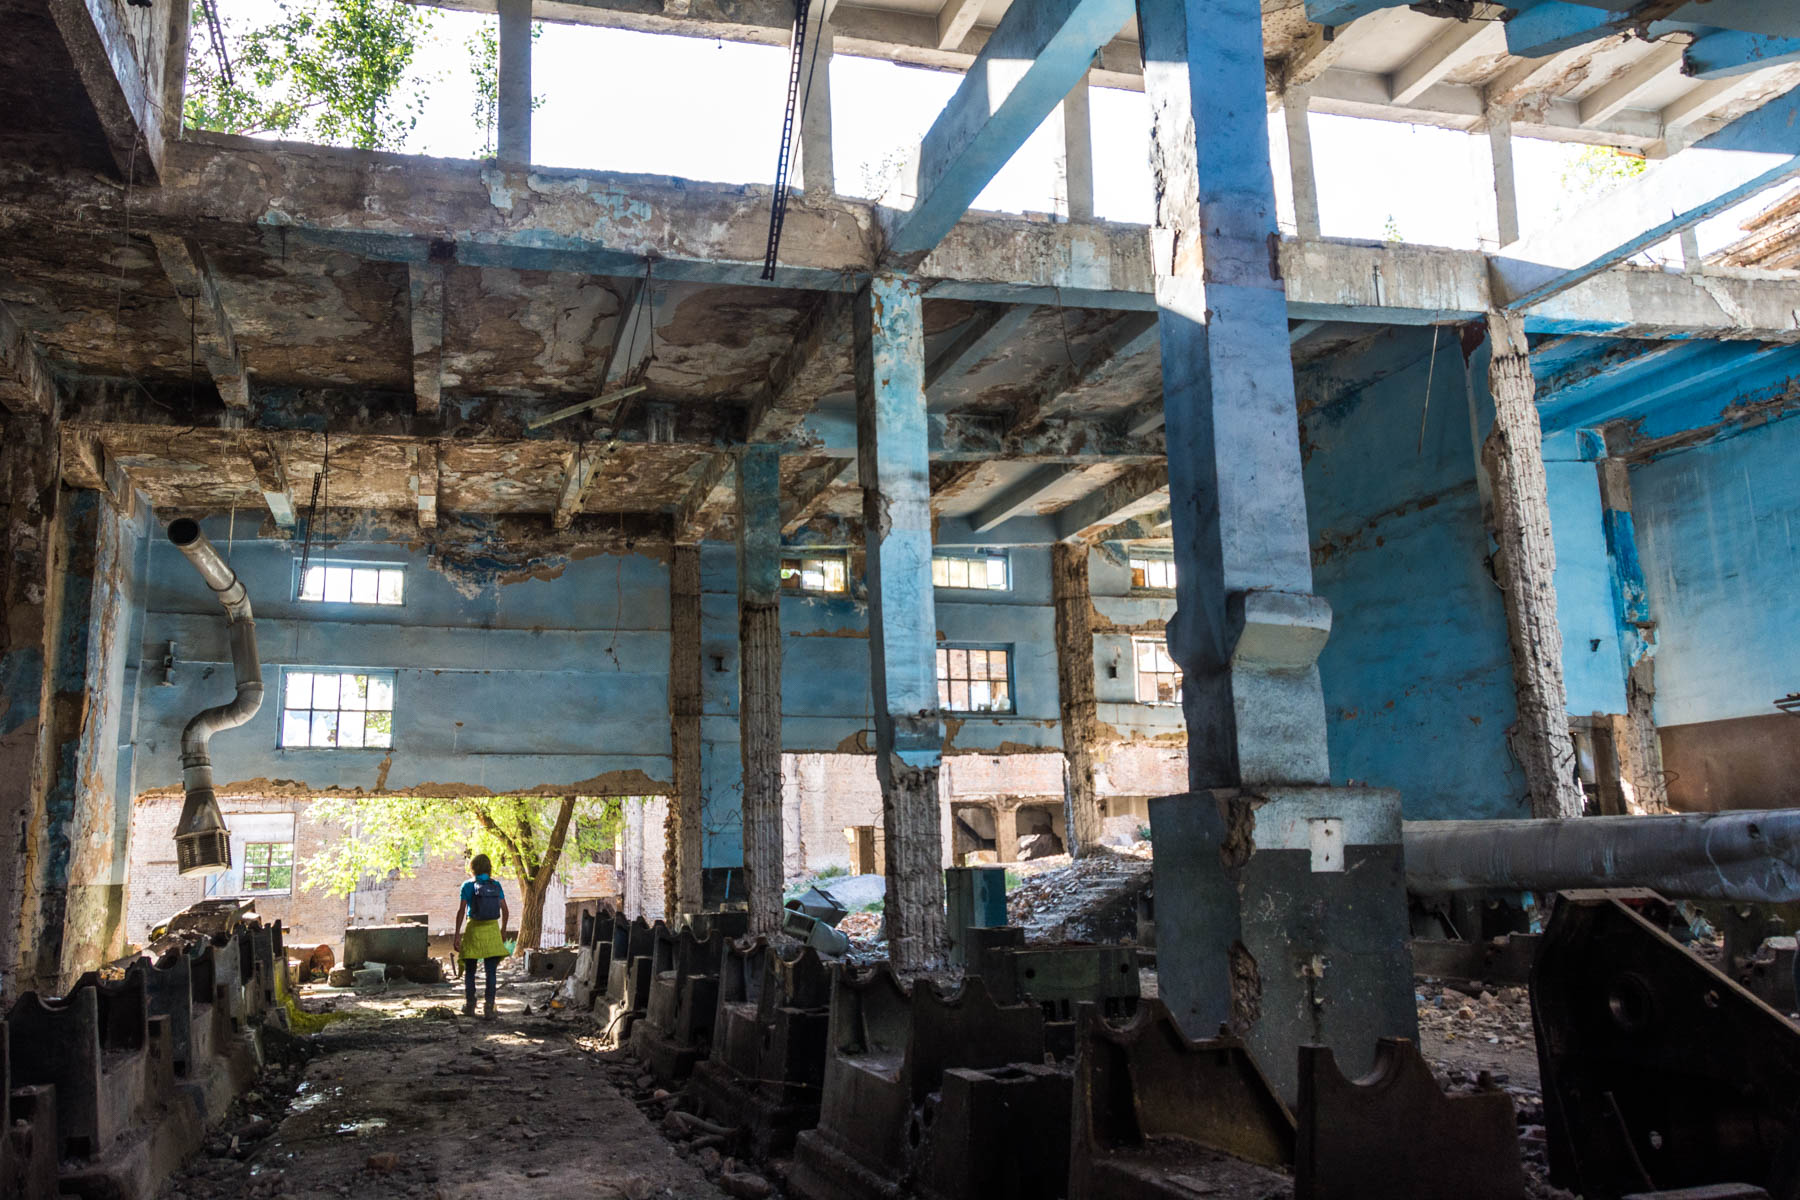 A room of strange machines in an abandoned Soviet factory near Min Kush, Kyrgyzstan - Lost With Purpose